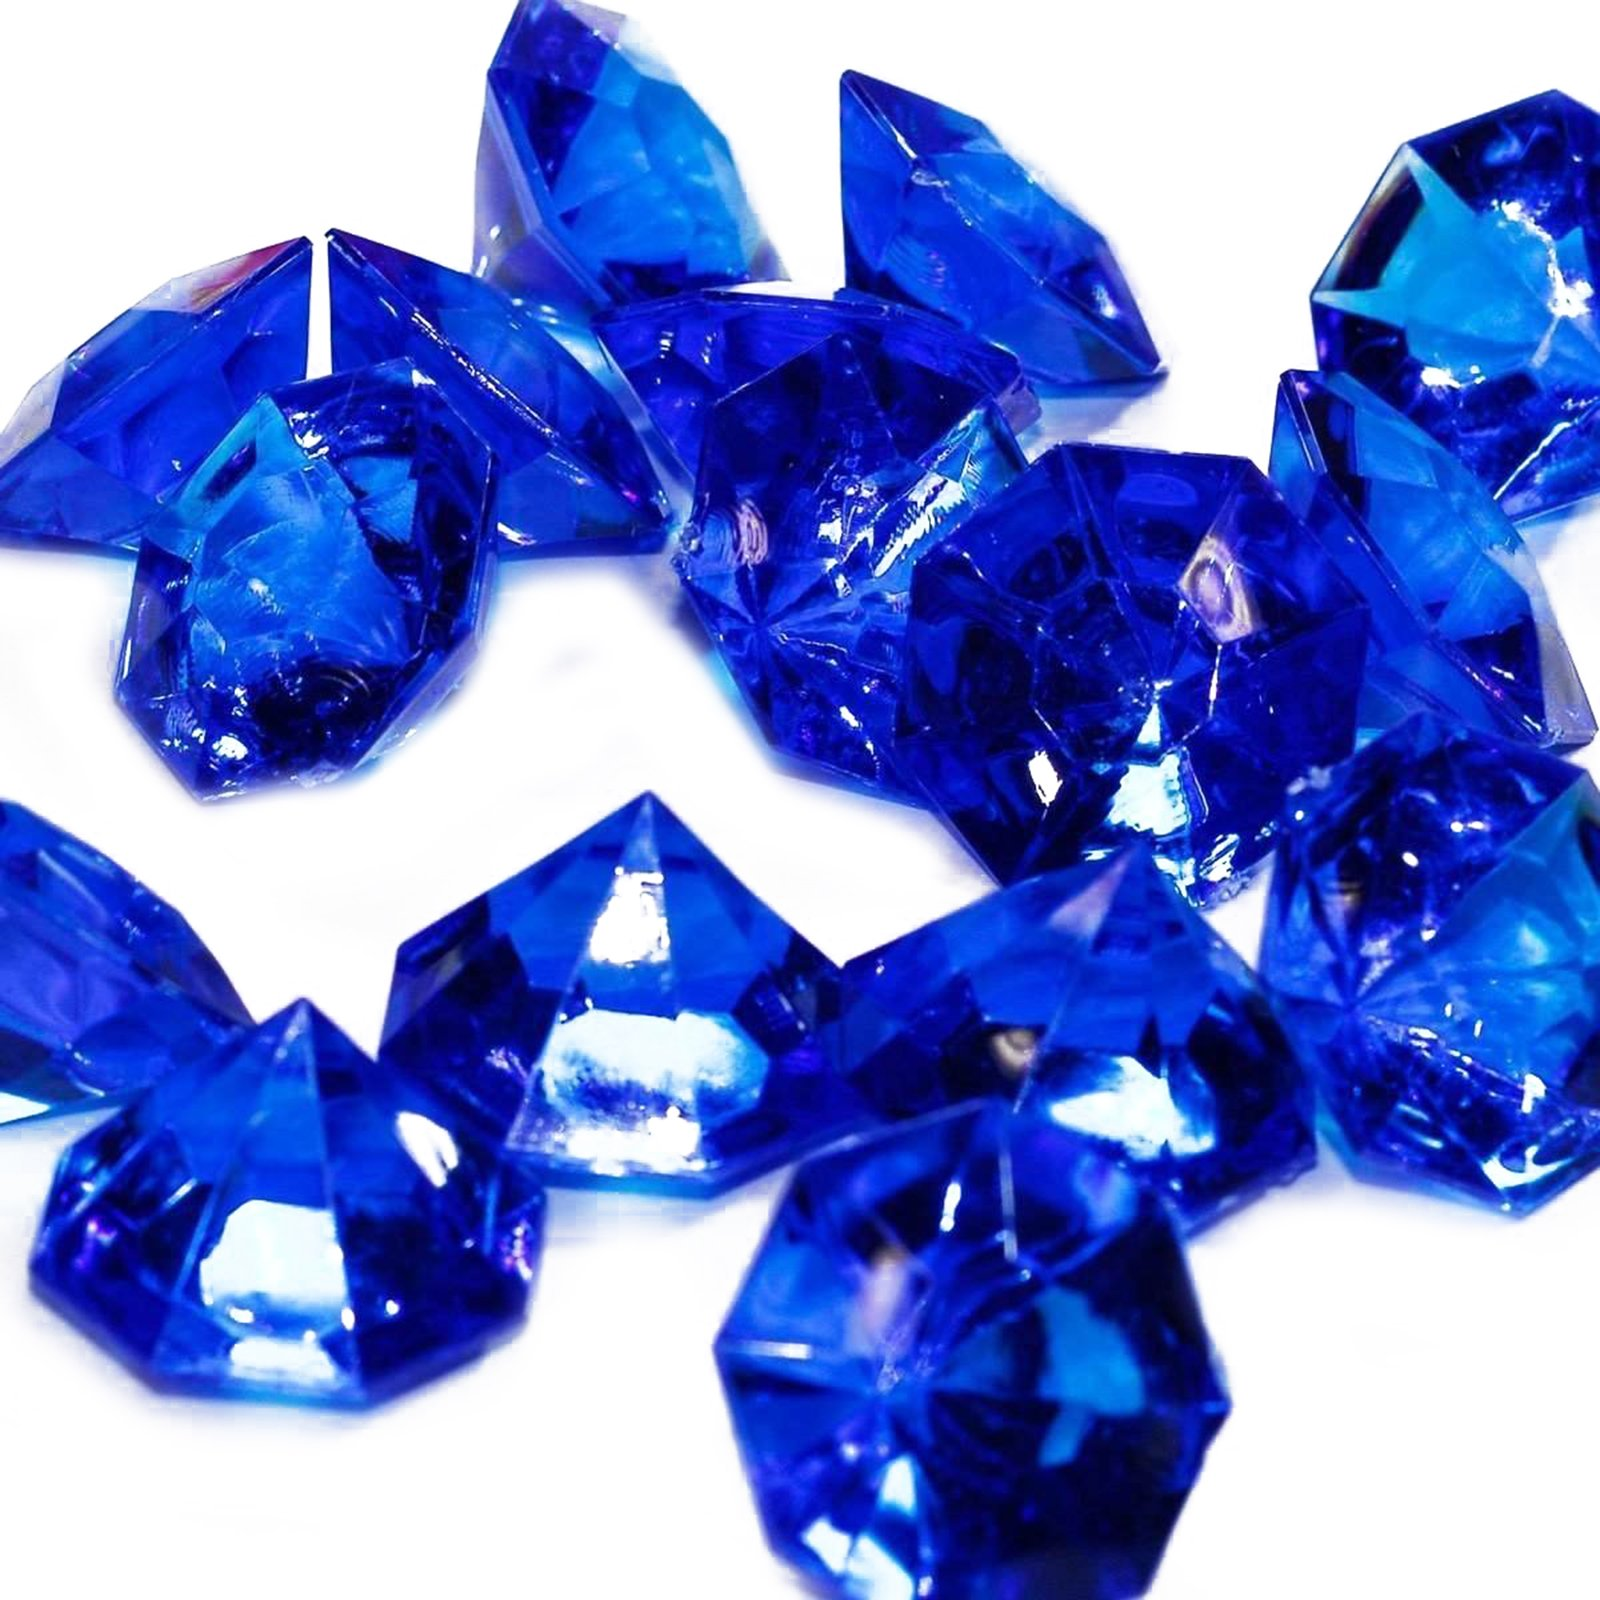 Adorox 25 Carat Flat Acrylic Diamonds Party Decorations Table Scatter (Royal Blue (1lb Bag))